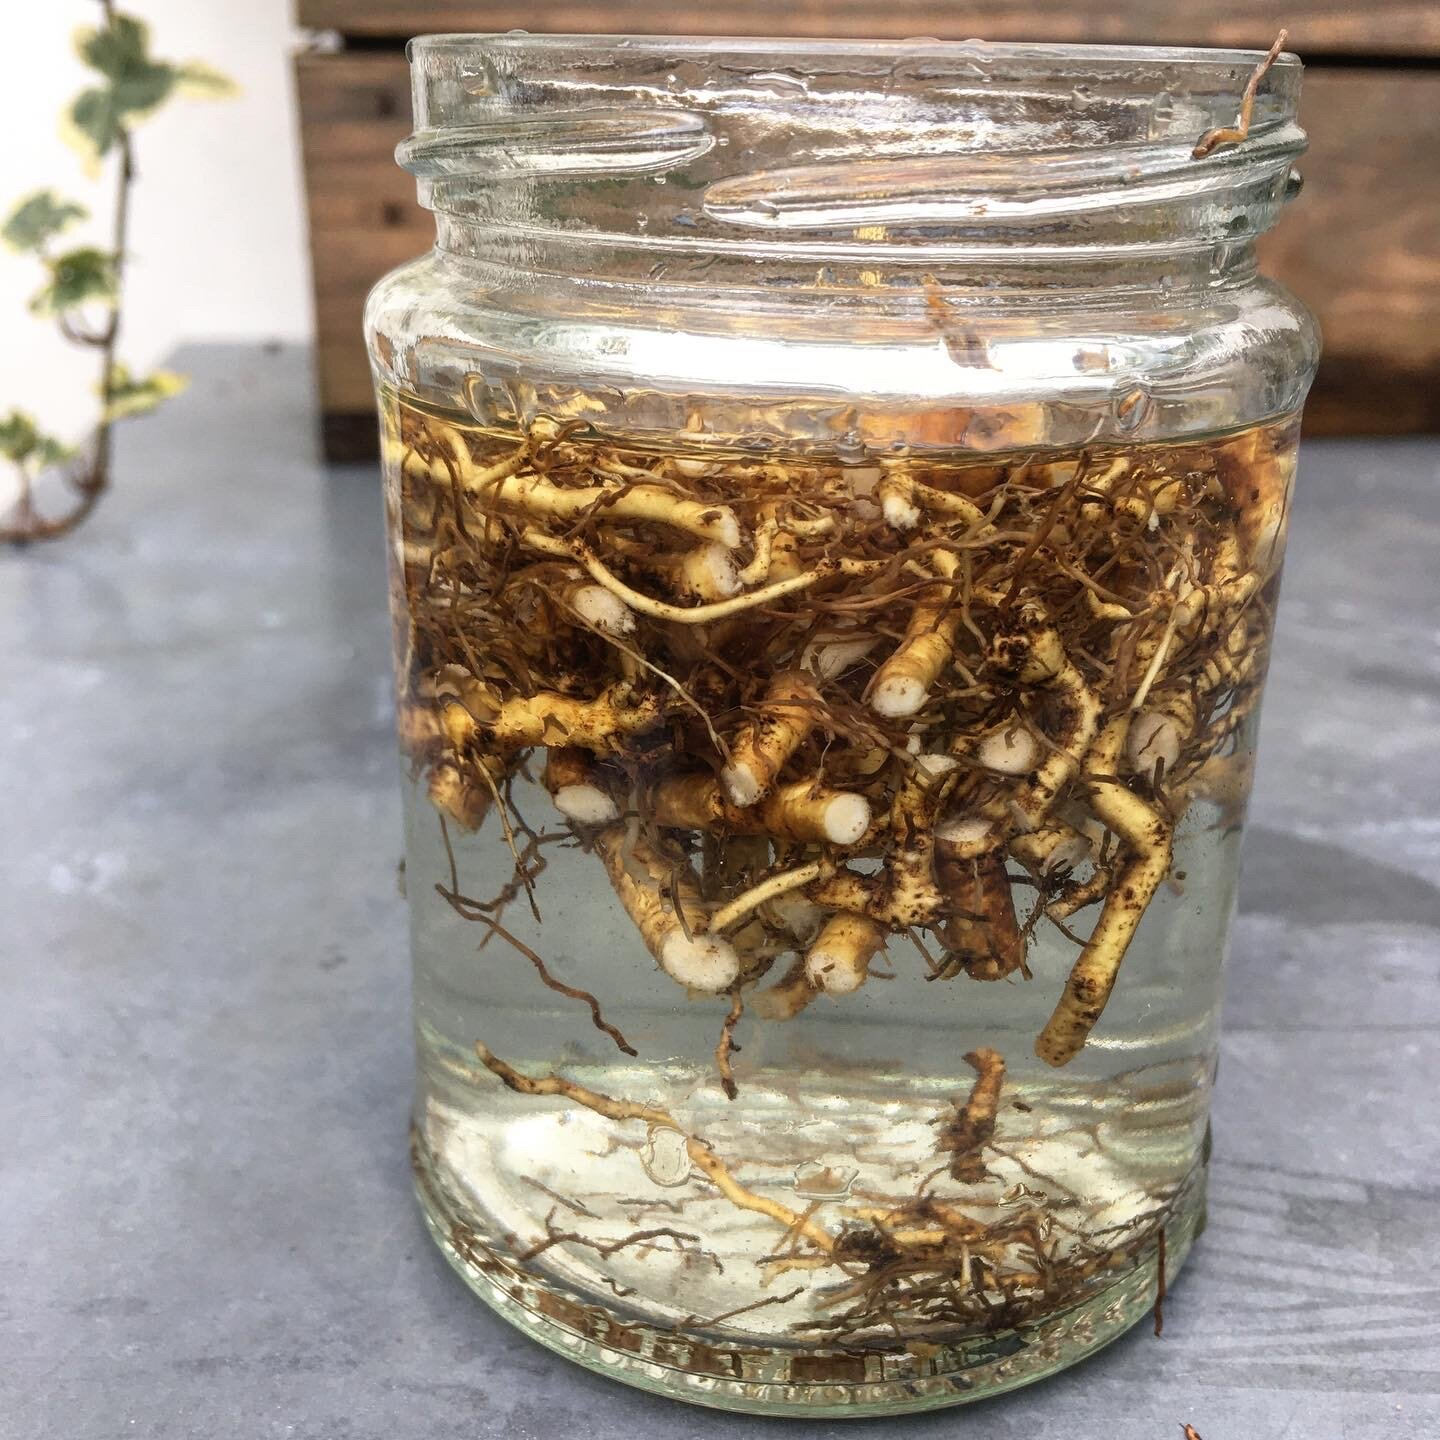 Chop up roots and leave in a jar of water for at least 8 hours to extract the mucilage creating a macerate.